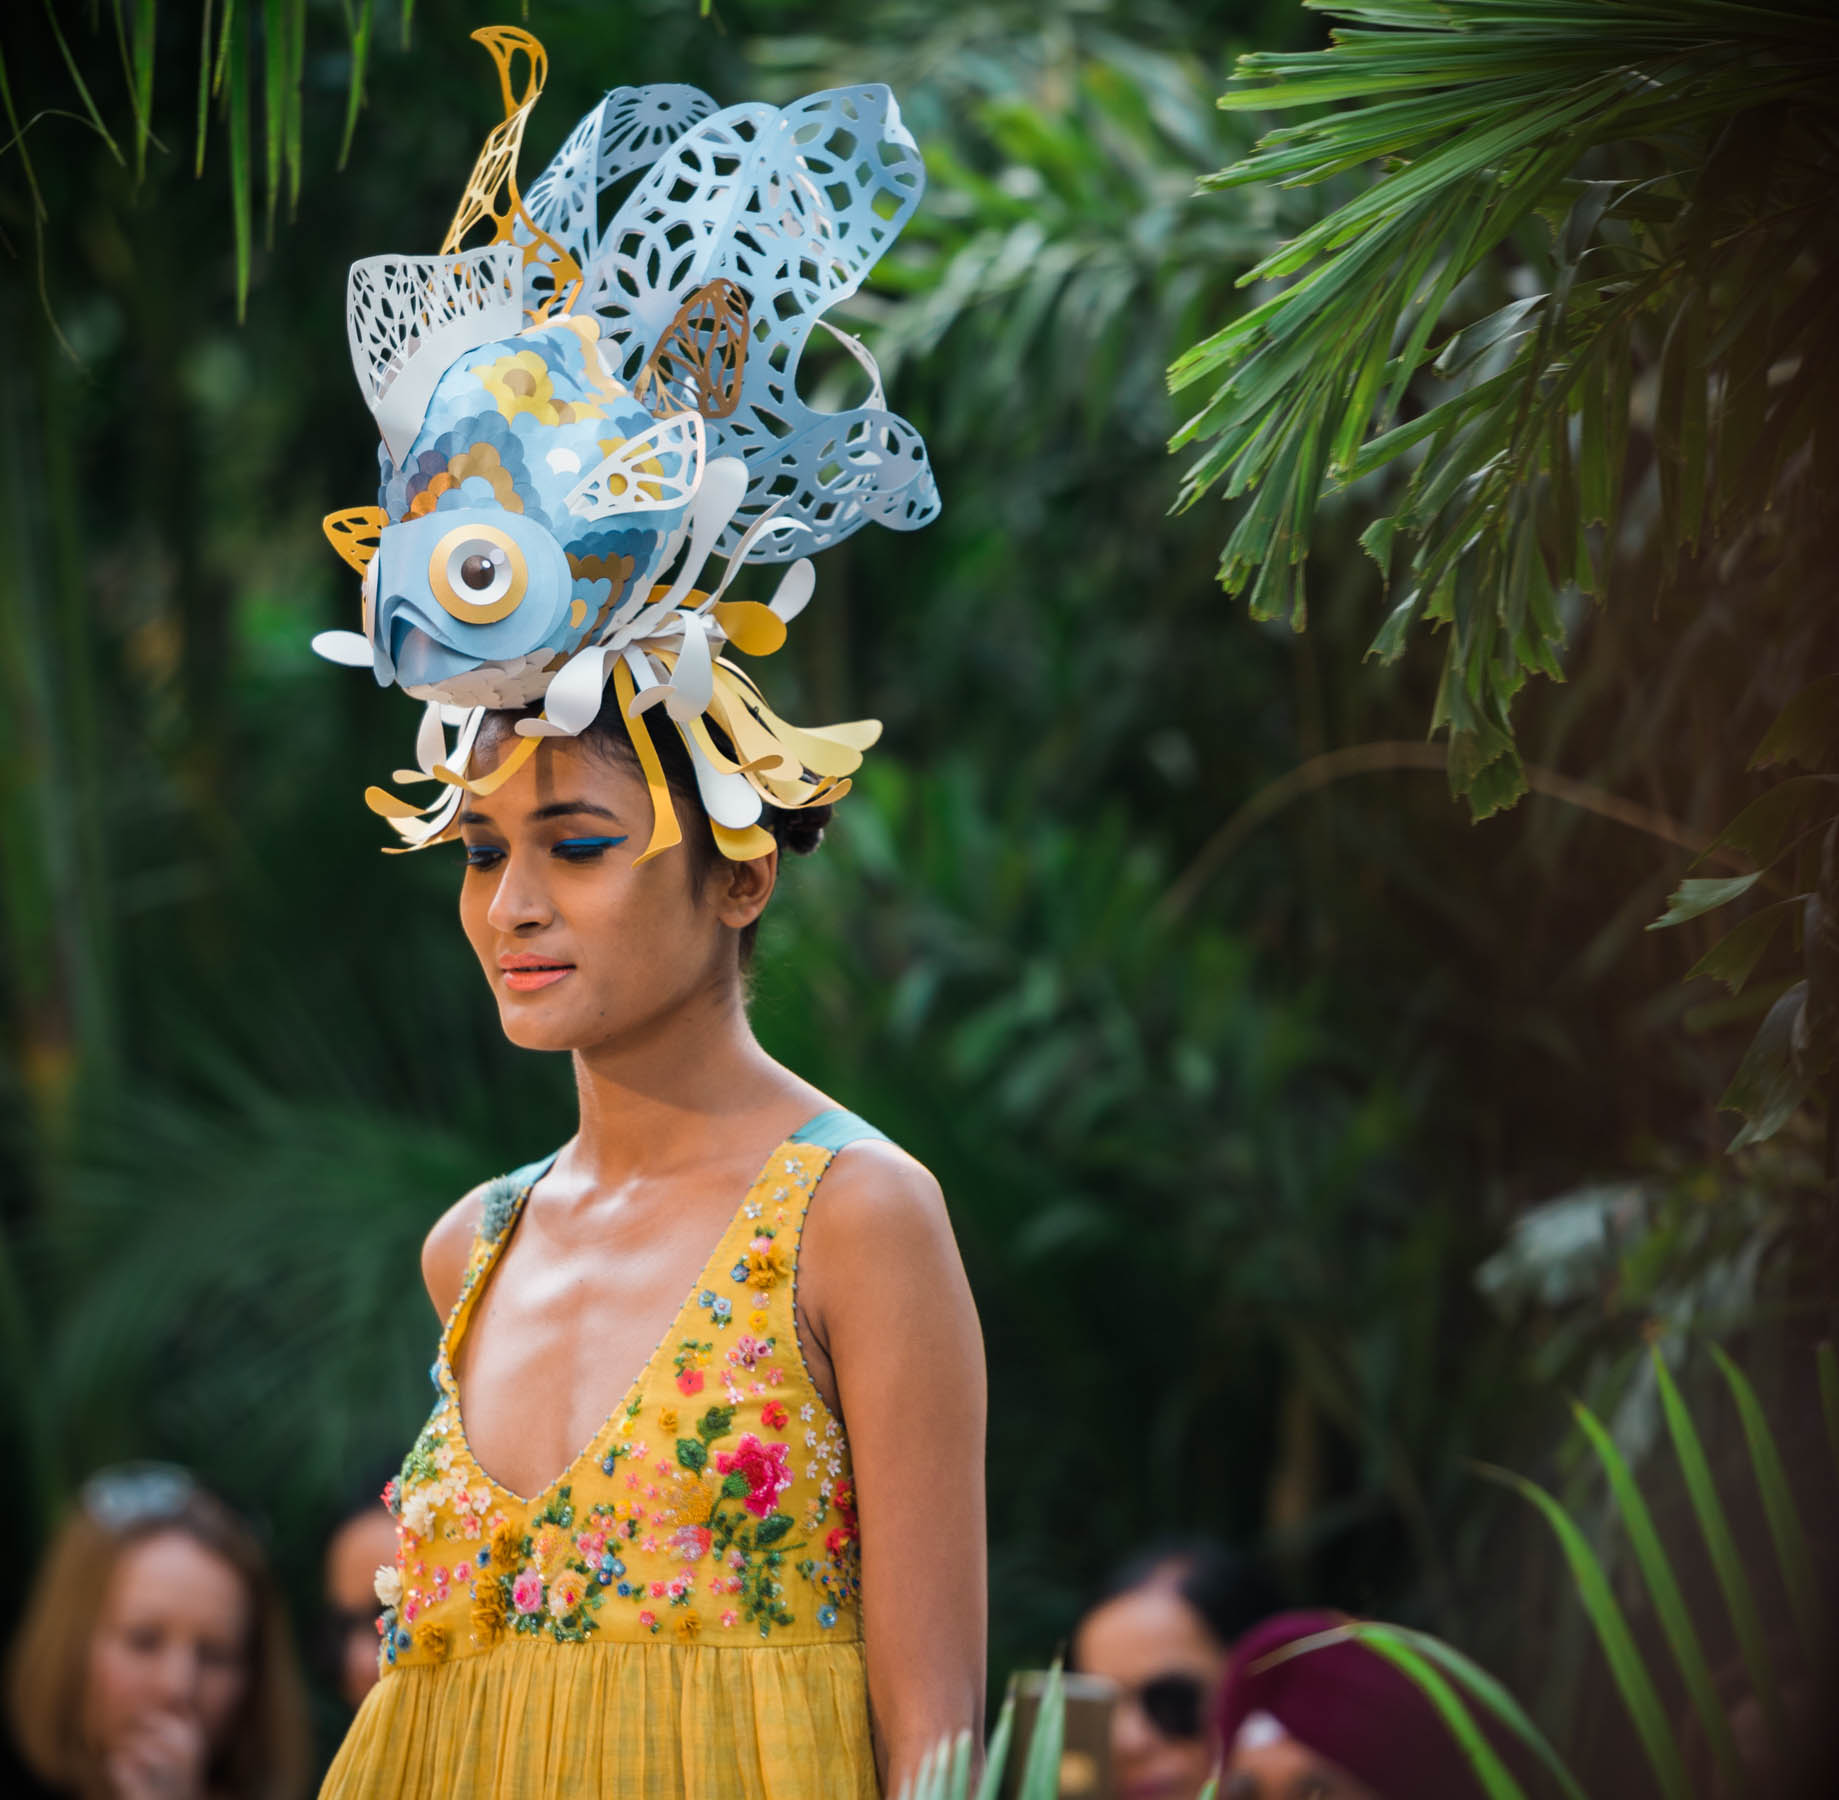 Naina Redhu, Naina.co, Pero, Aneeth Arora, Fashion Designer, FDCI, Lotus MakeUp India Fashion Week Spring Summer 2019, LMIFWSS19, LMIFW, India Fashion Week, Fashion Week Delhi, MadeInIndia, Made In India, EyesForFashion, Professional Photographer, Blogger, Fashion Photographer, Lifestyle Photographer, Luxury Photographer, Delhi Photographer, Gurgaon Photographer, Delhi Blogger, Gurgaon Blogger, Indian Blogger